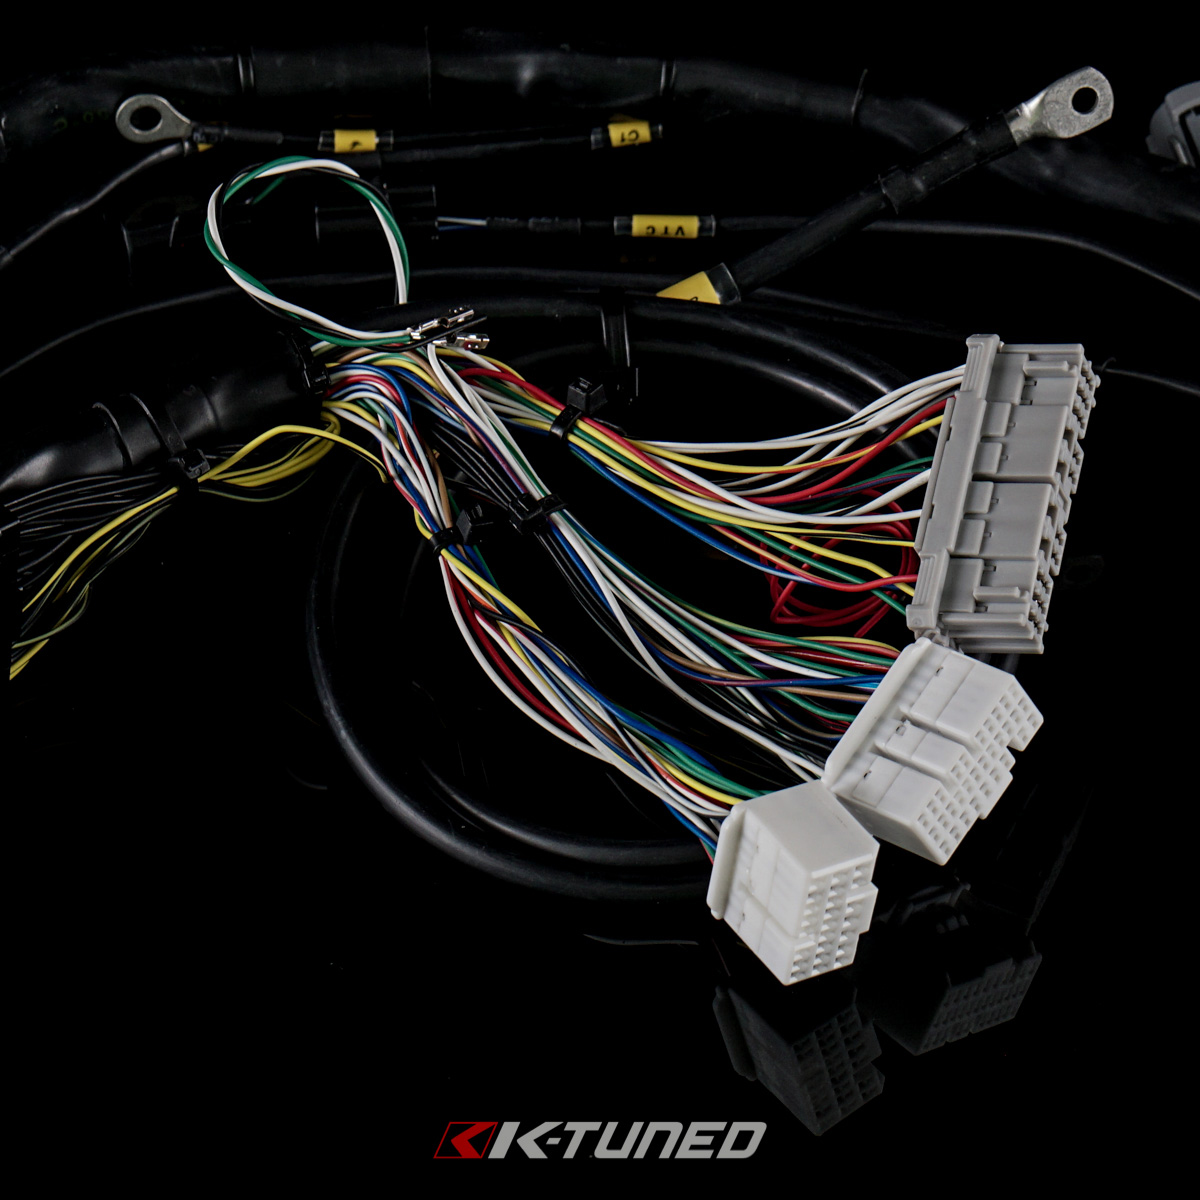 KTH 204 ENG_020 k series tucked engine harness rsx tucked wire harness at crackthecode.co